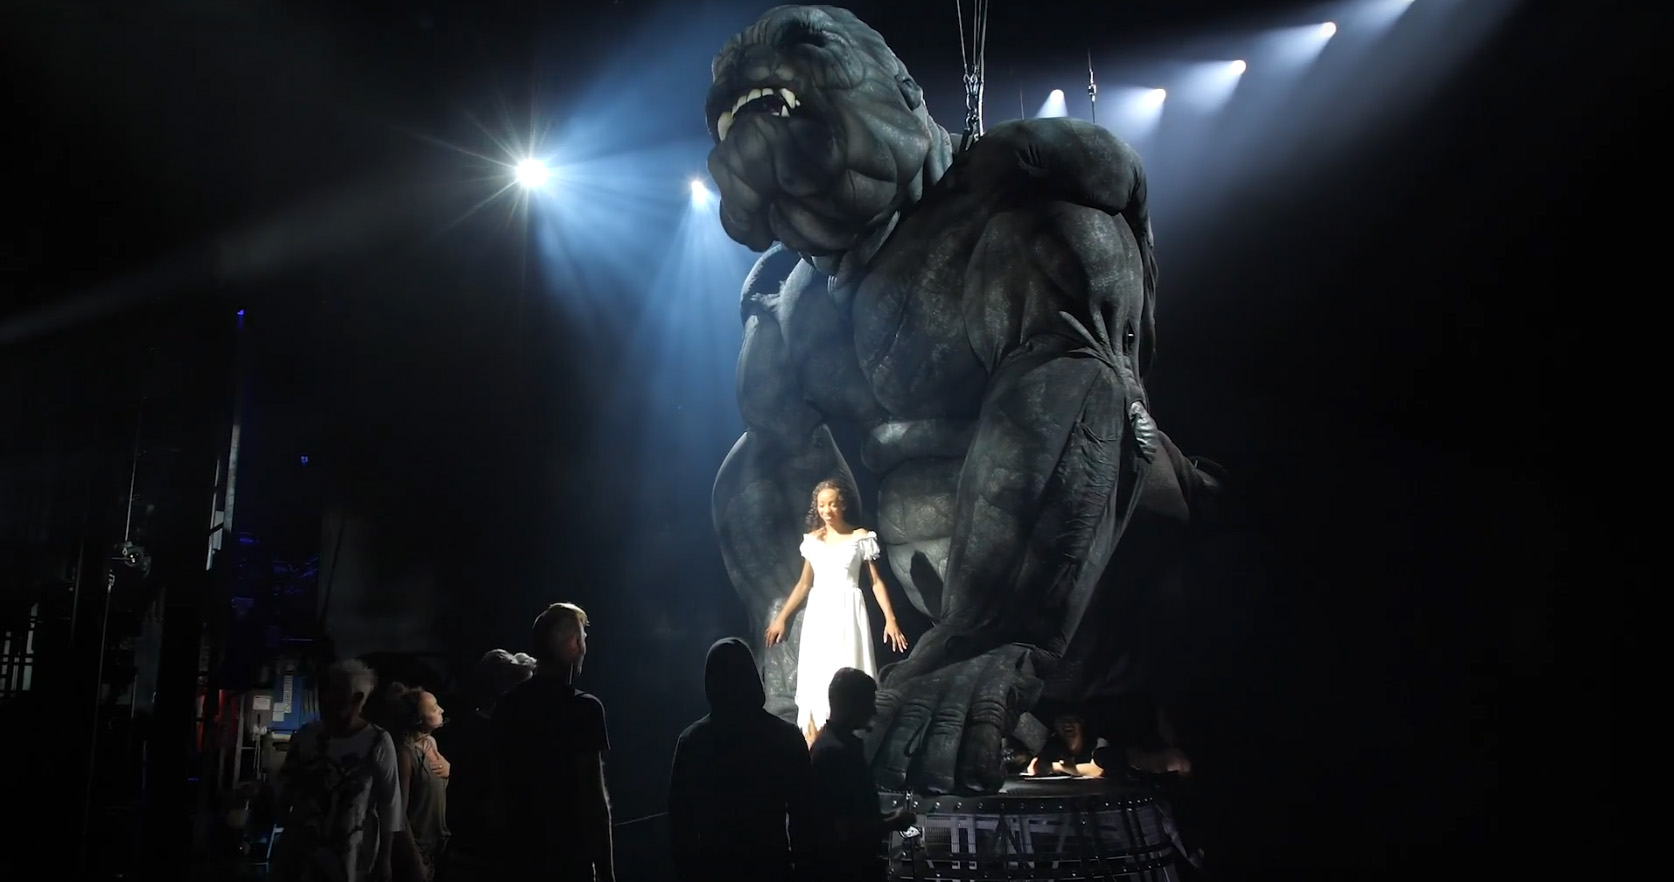 king kong broadway Christiani Pitts is Ann Darrow